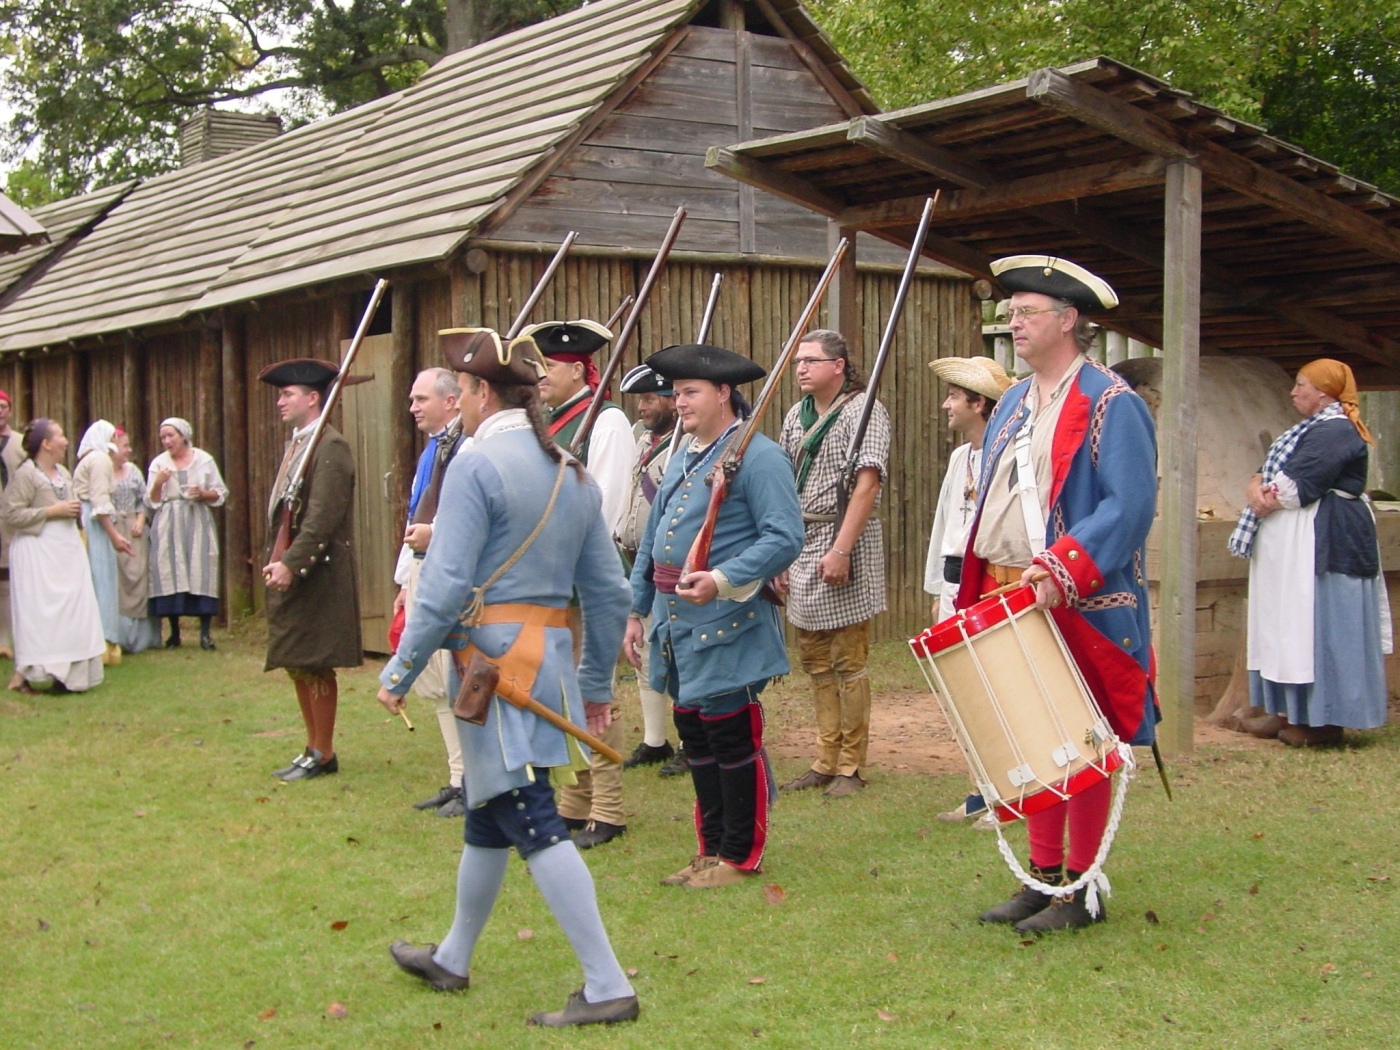 Experience the French Colonial life as you are guided through the fort by costumed interpreters.